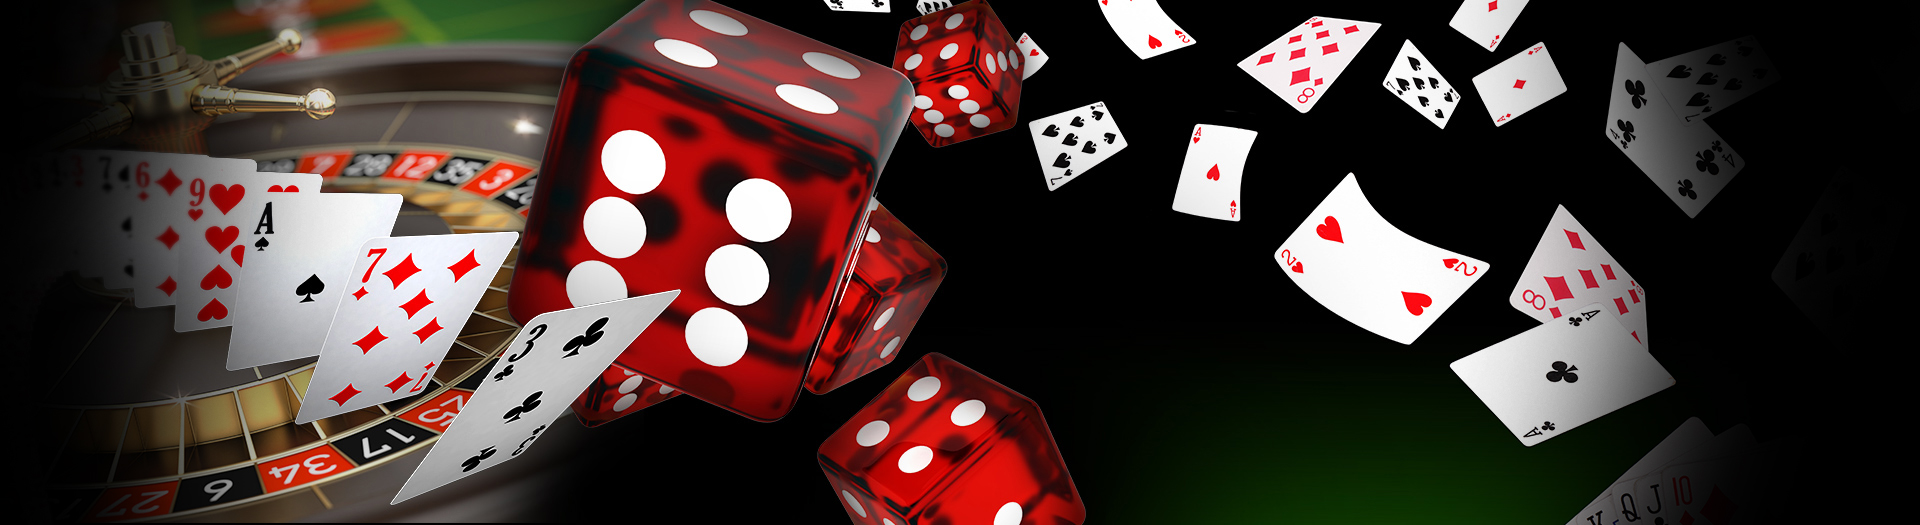 sites poker mobile-12